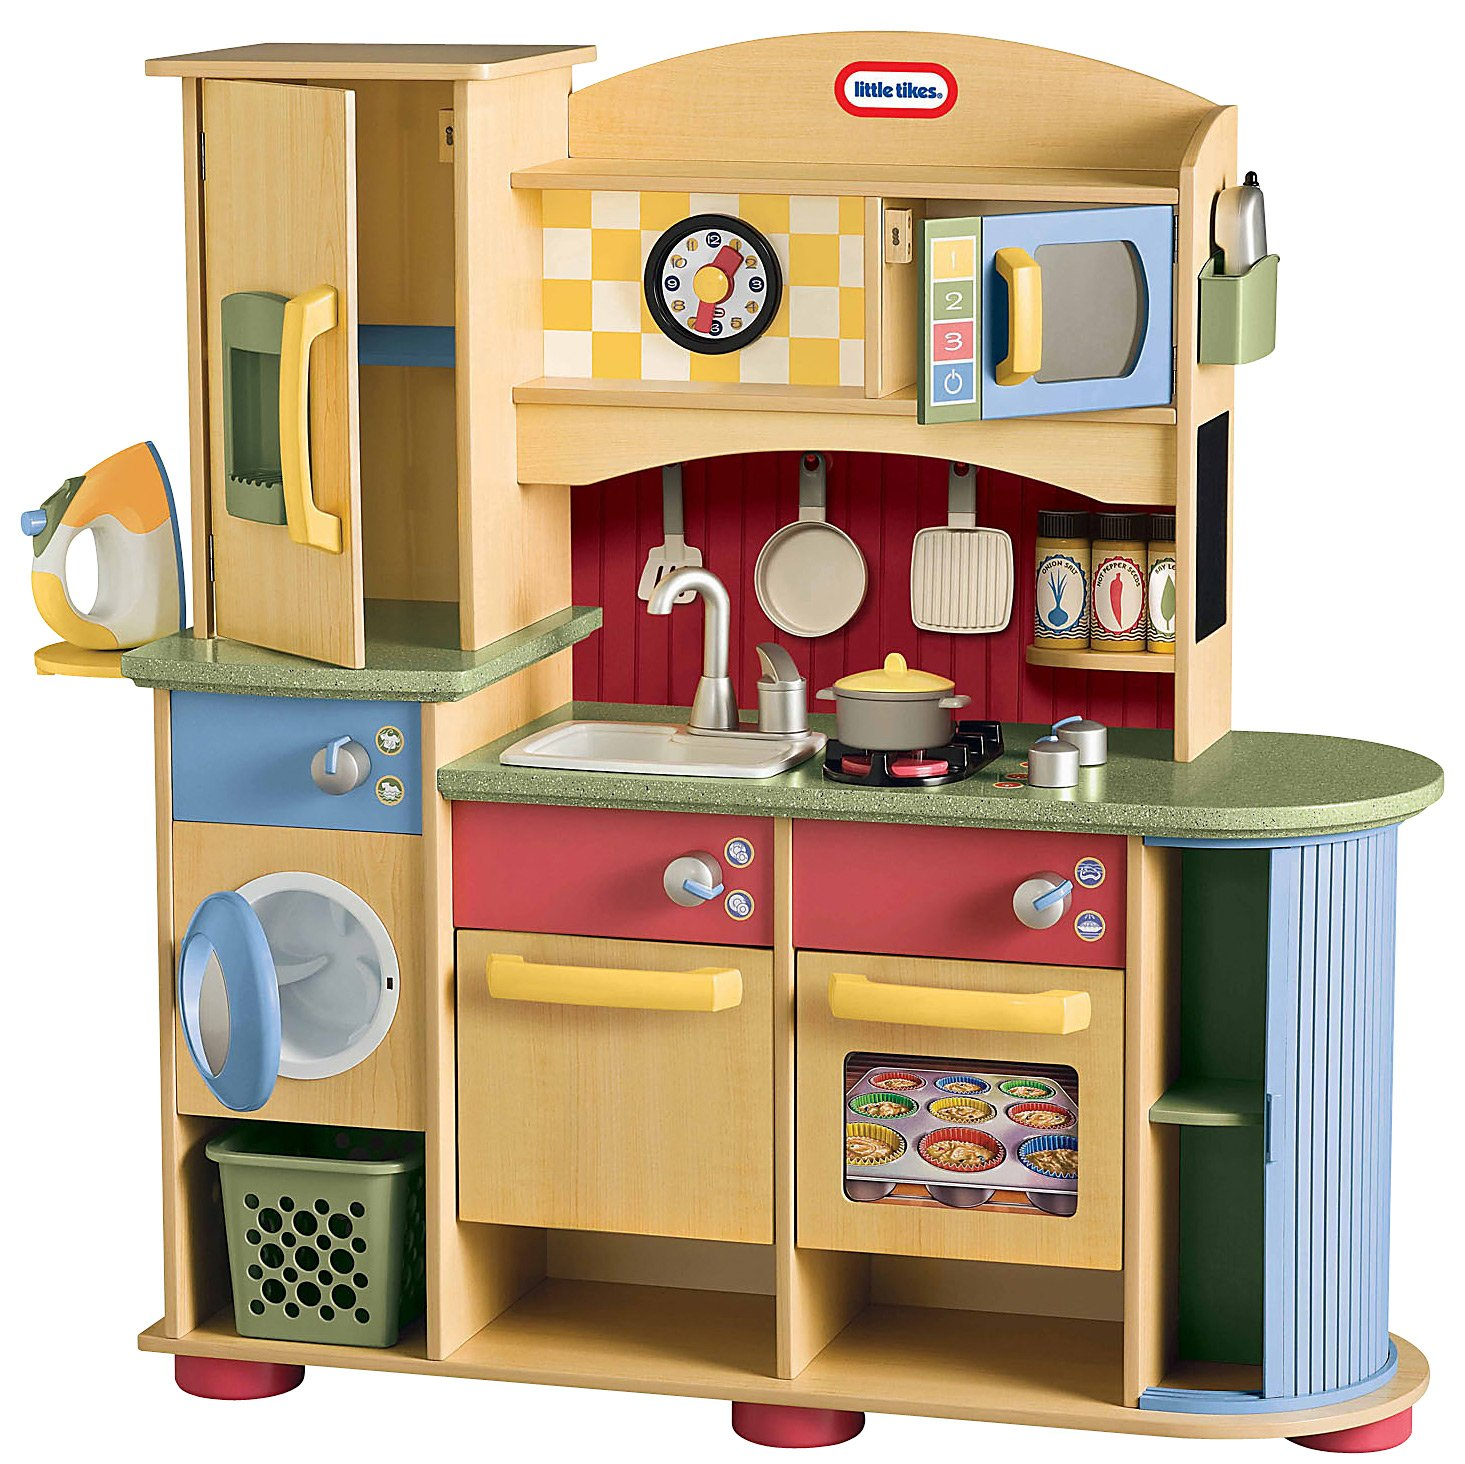 Little tikes deluxe wooden kitchen and laundry center for Kitchen set toys divisoria